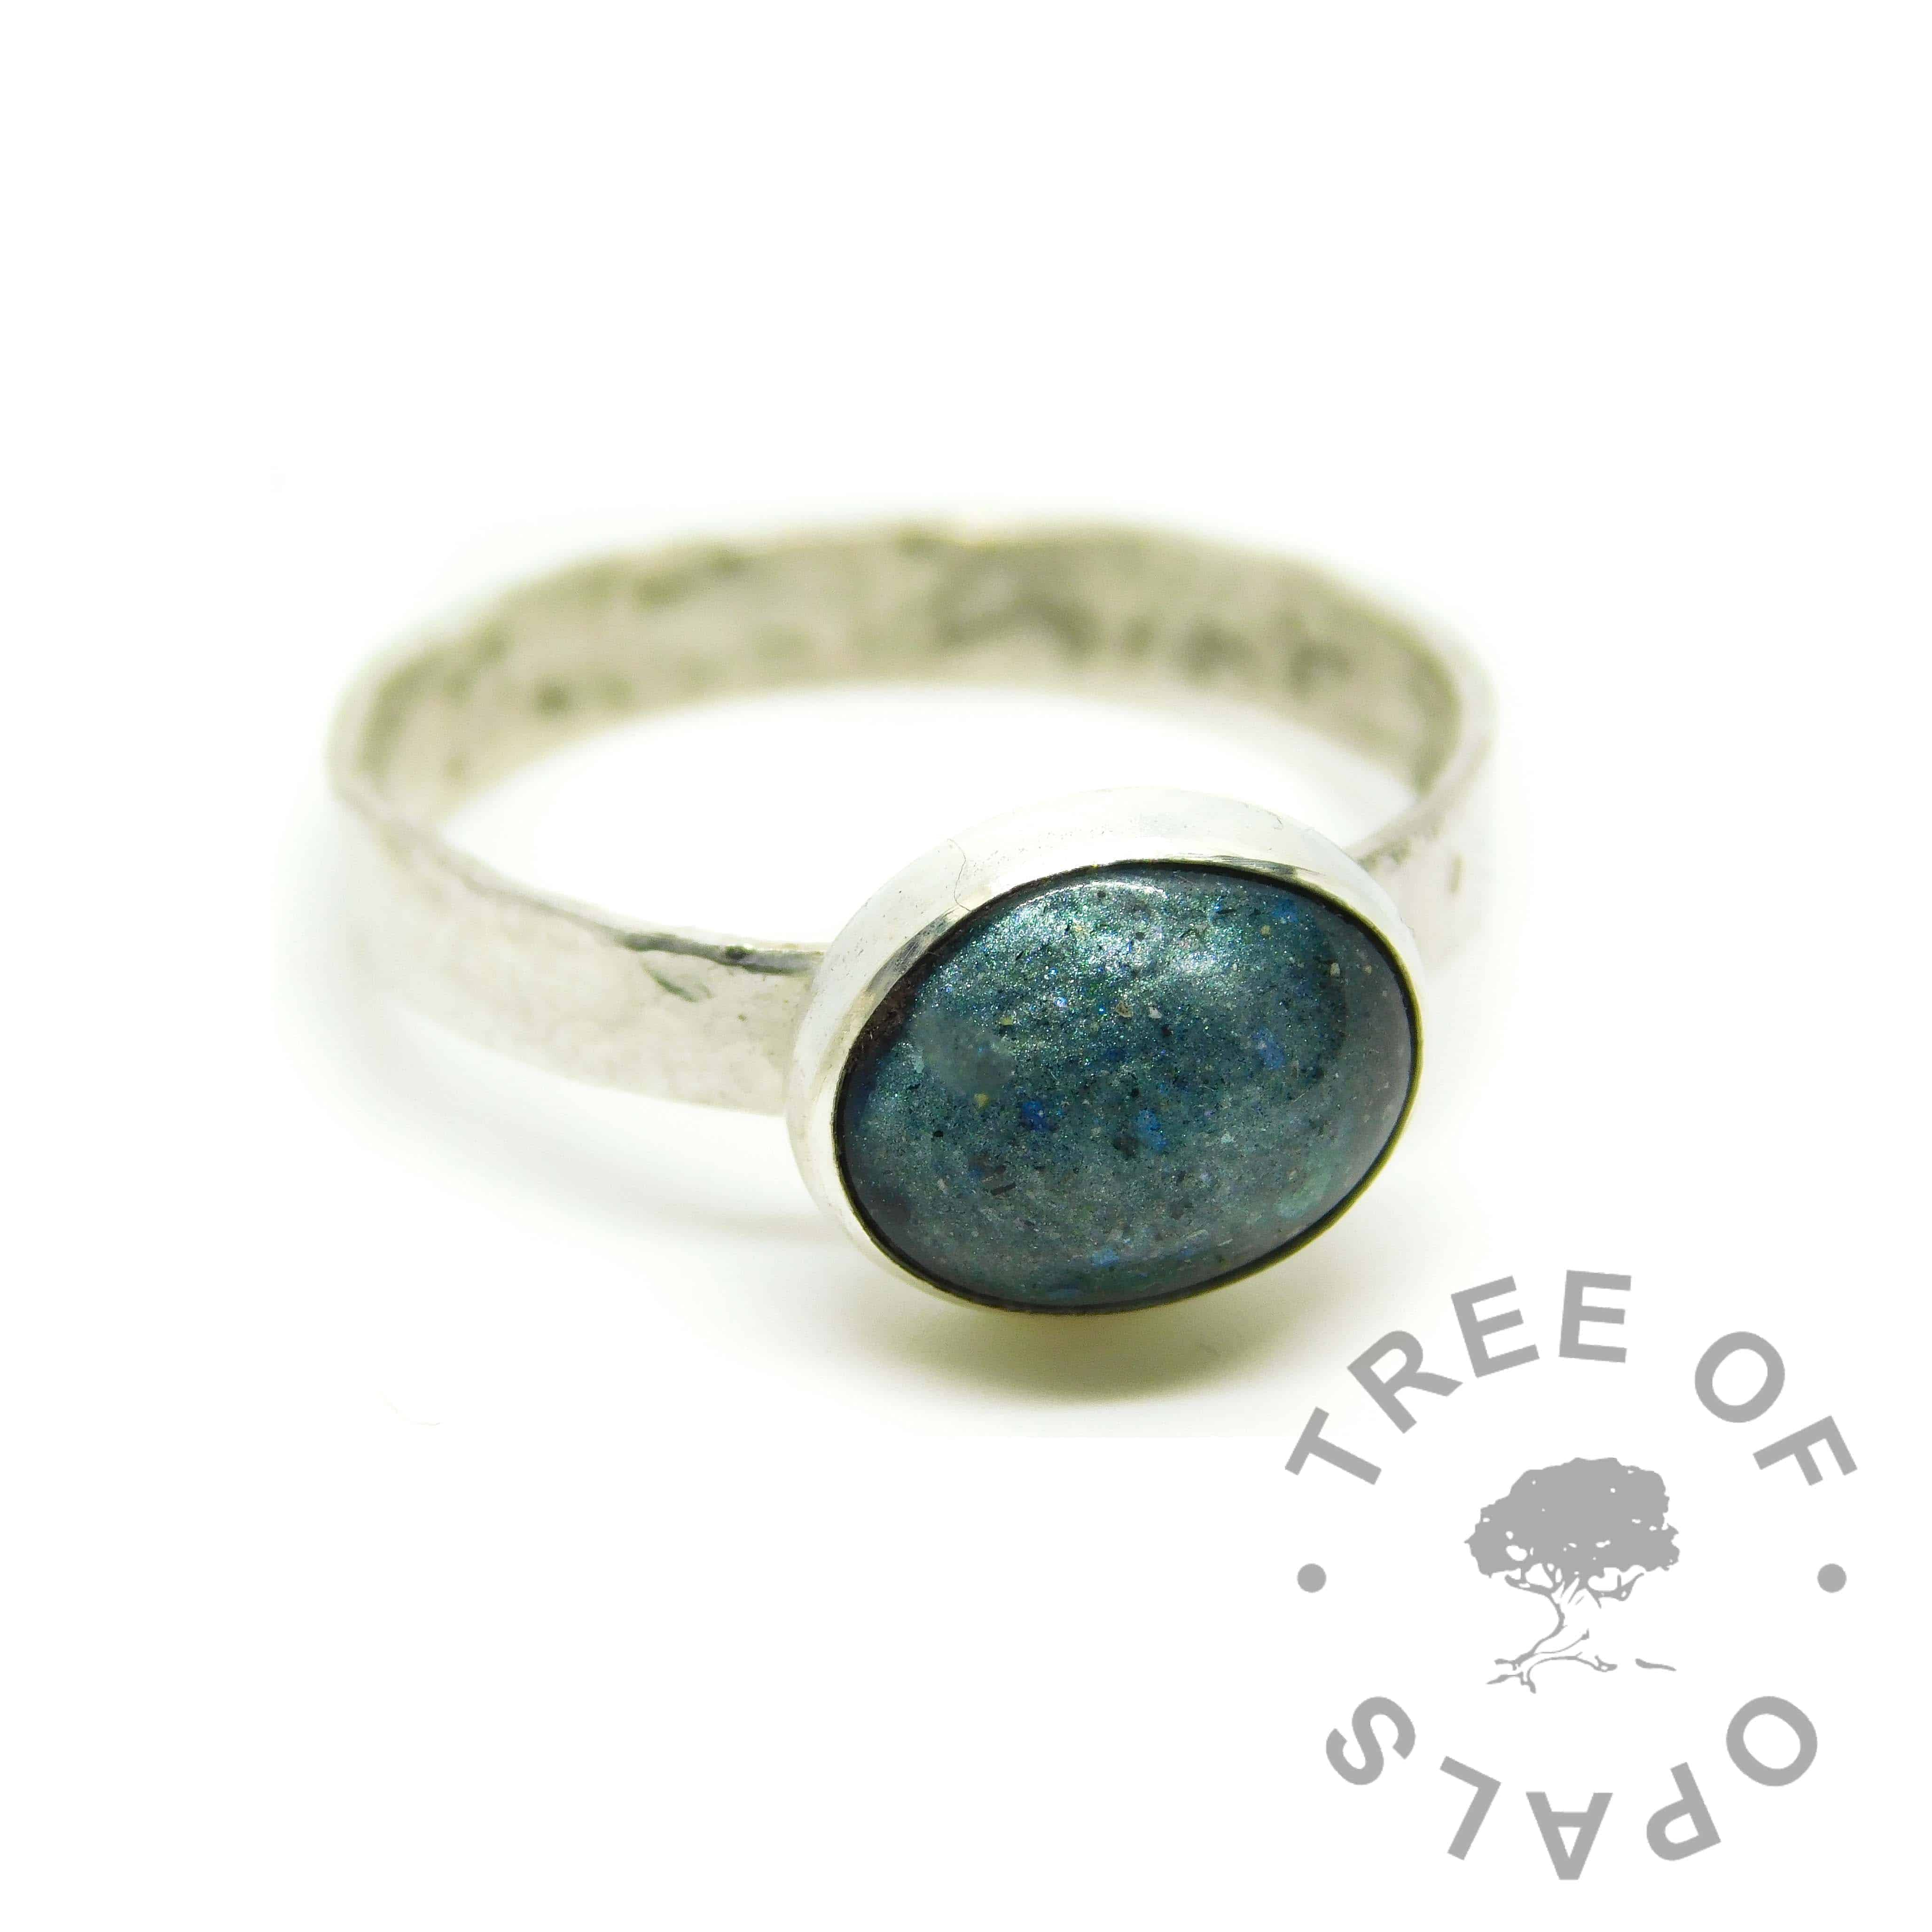 cremation ash ring textured band, mermaid teal resin sparkle mix